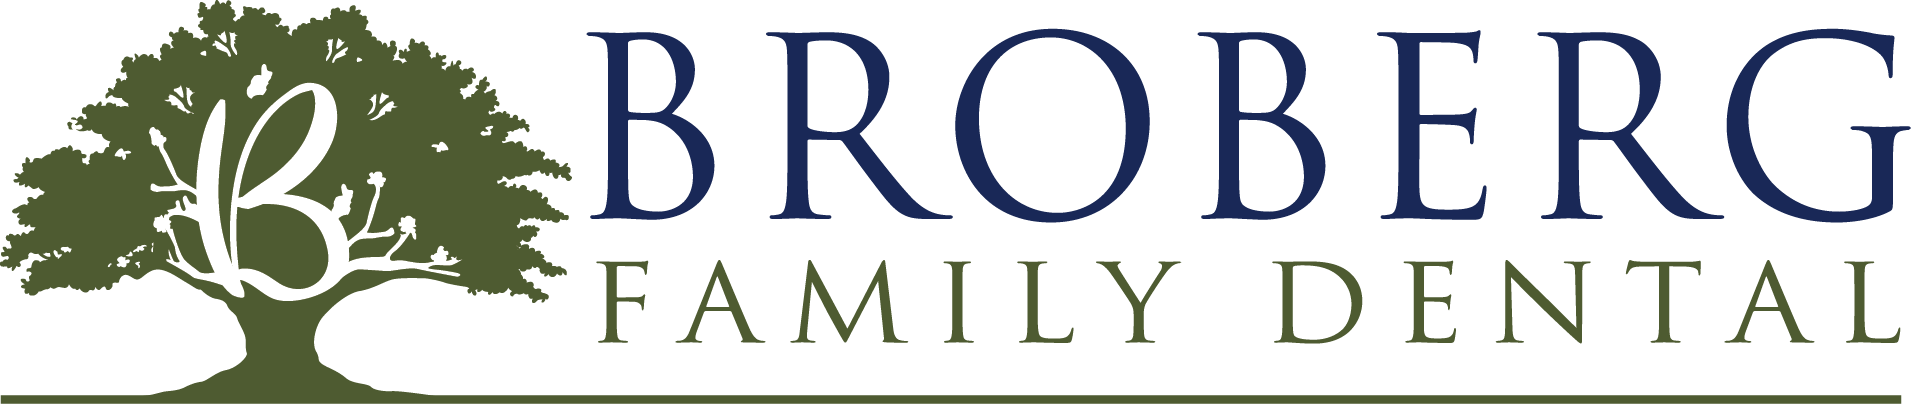 Broberg Family Dental